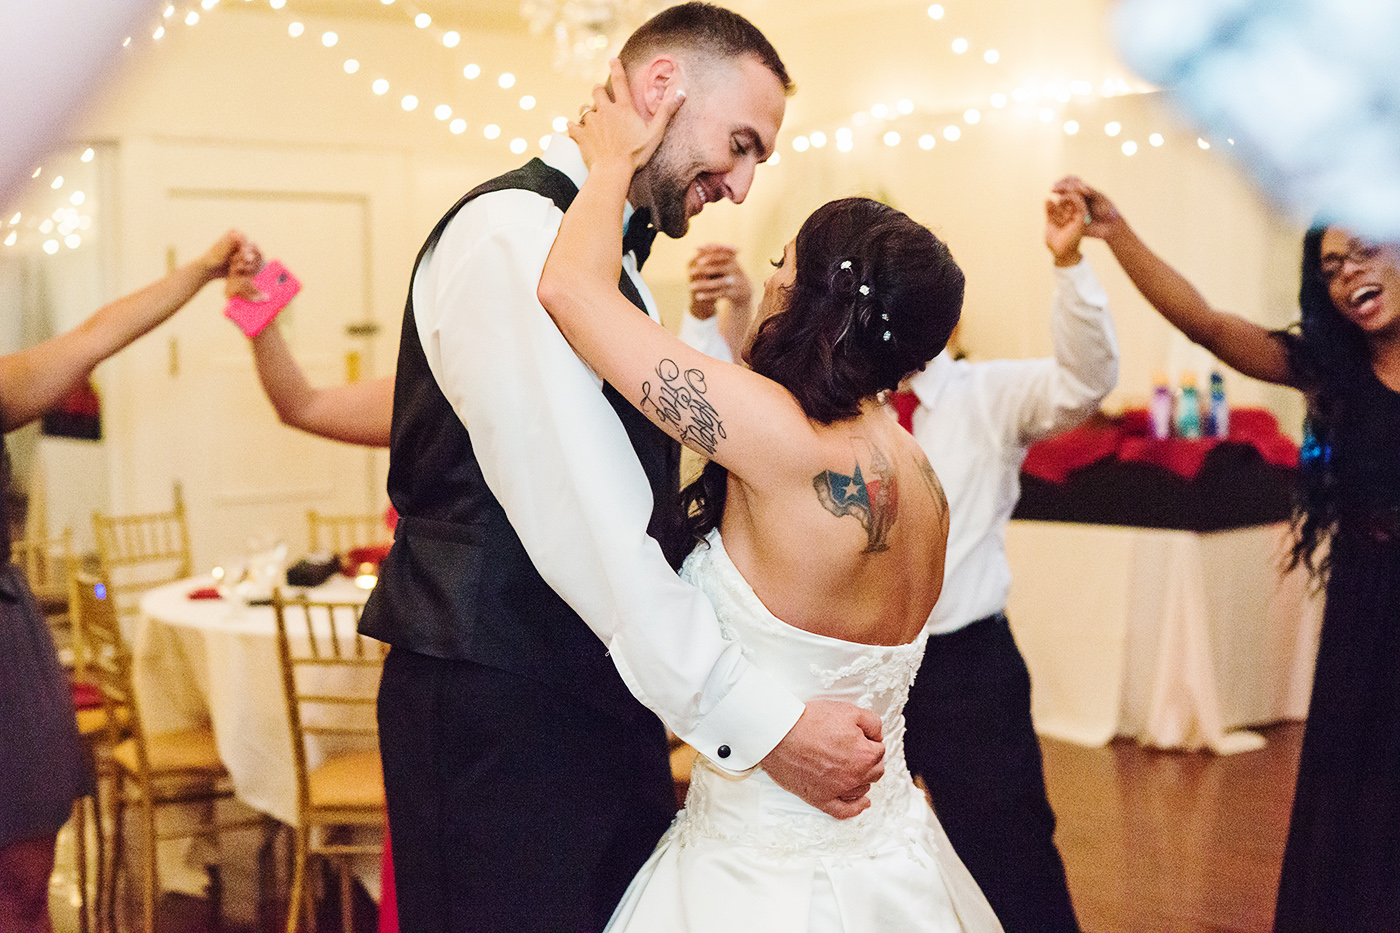 Last dance in a circle of friends at Bristow Manor wedding reception